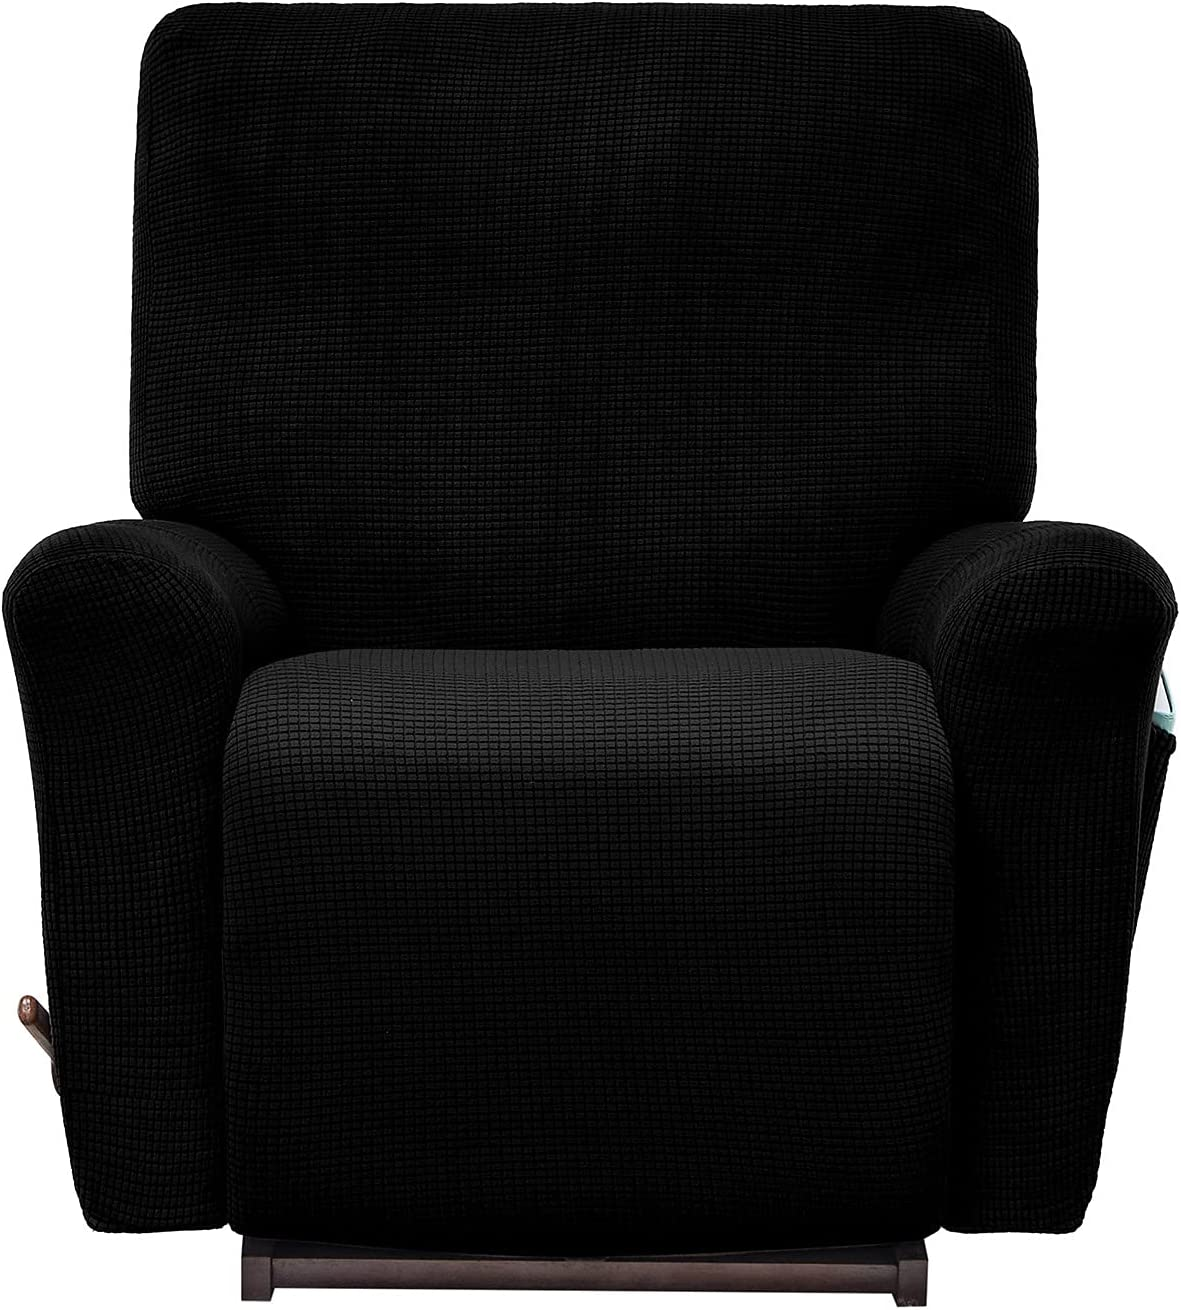 AlGaiety Stretch Recliner Slipcover Sofa Cover 4 Separate Pieces/1 Set Spandex Jacquard Fabric Furniture Protector Couch Cover with Elastic Bottom for Living Room(Recliner,Black)